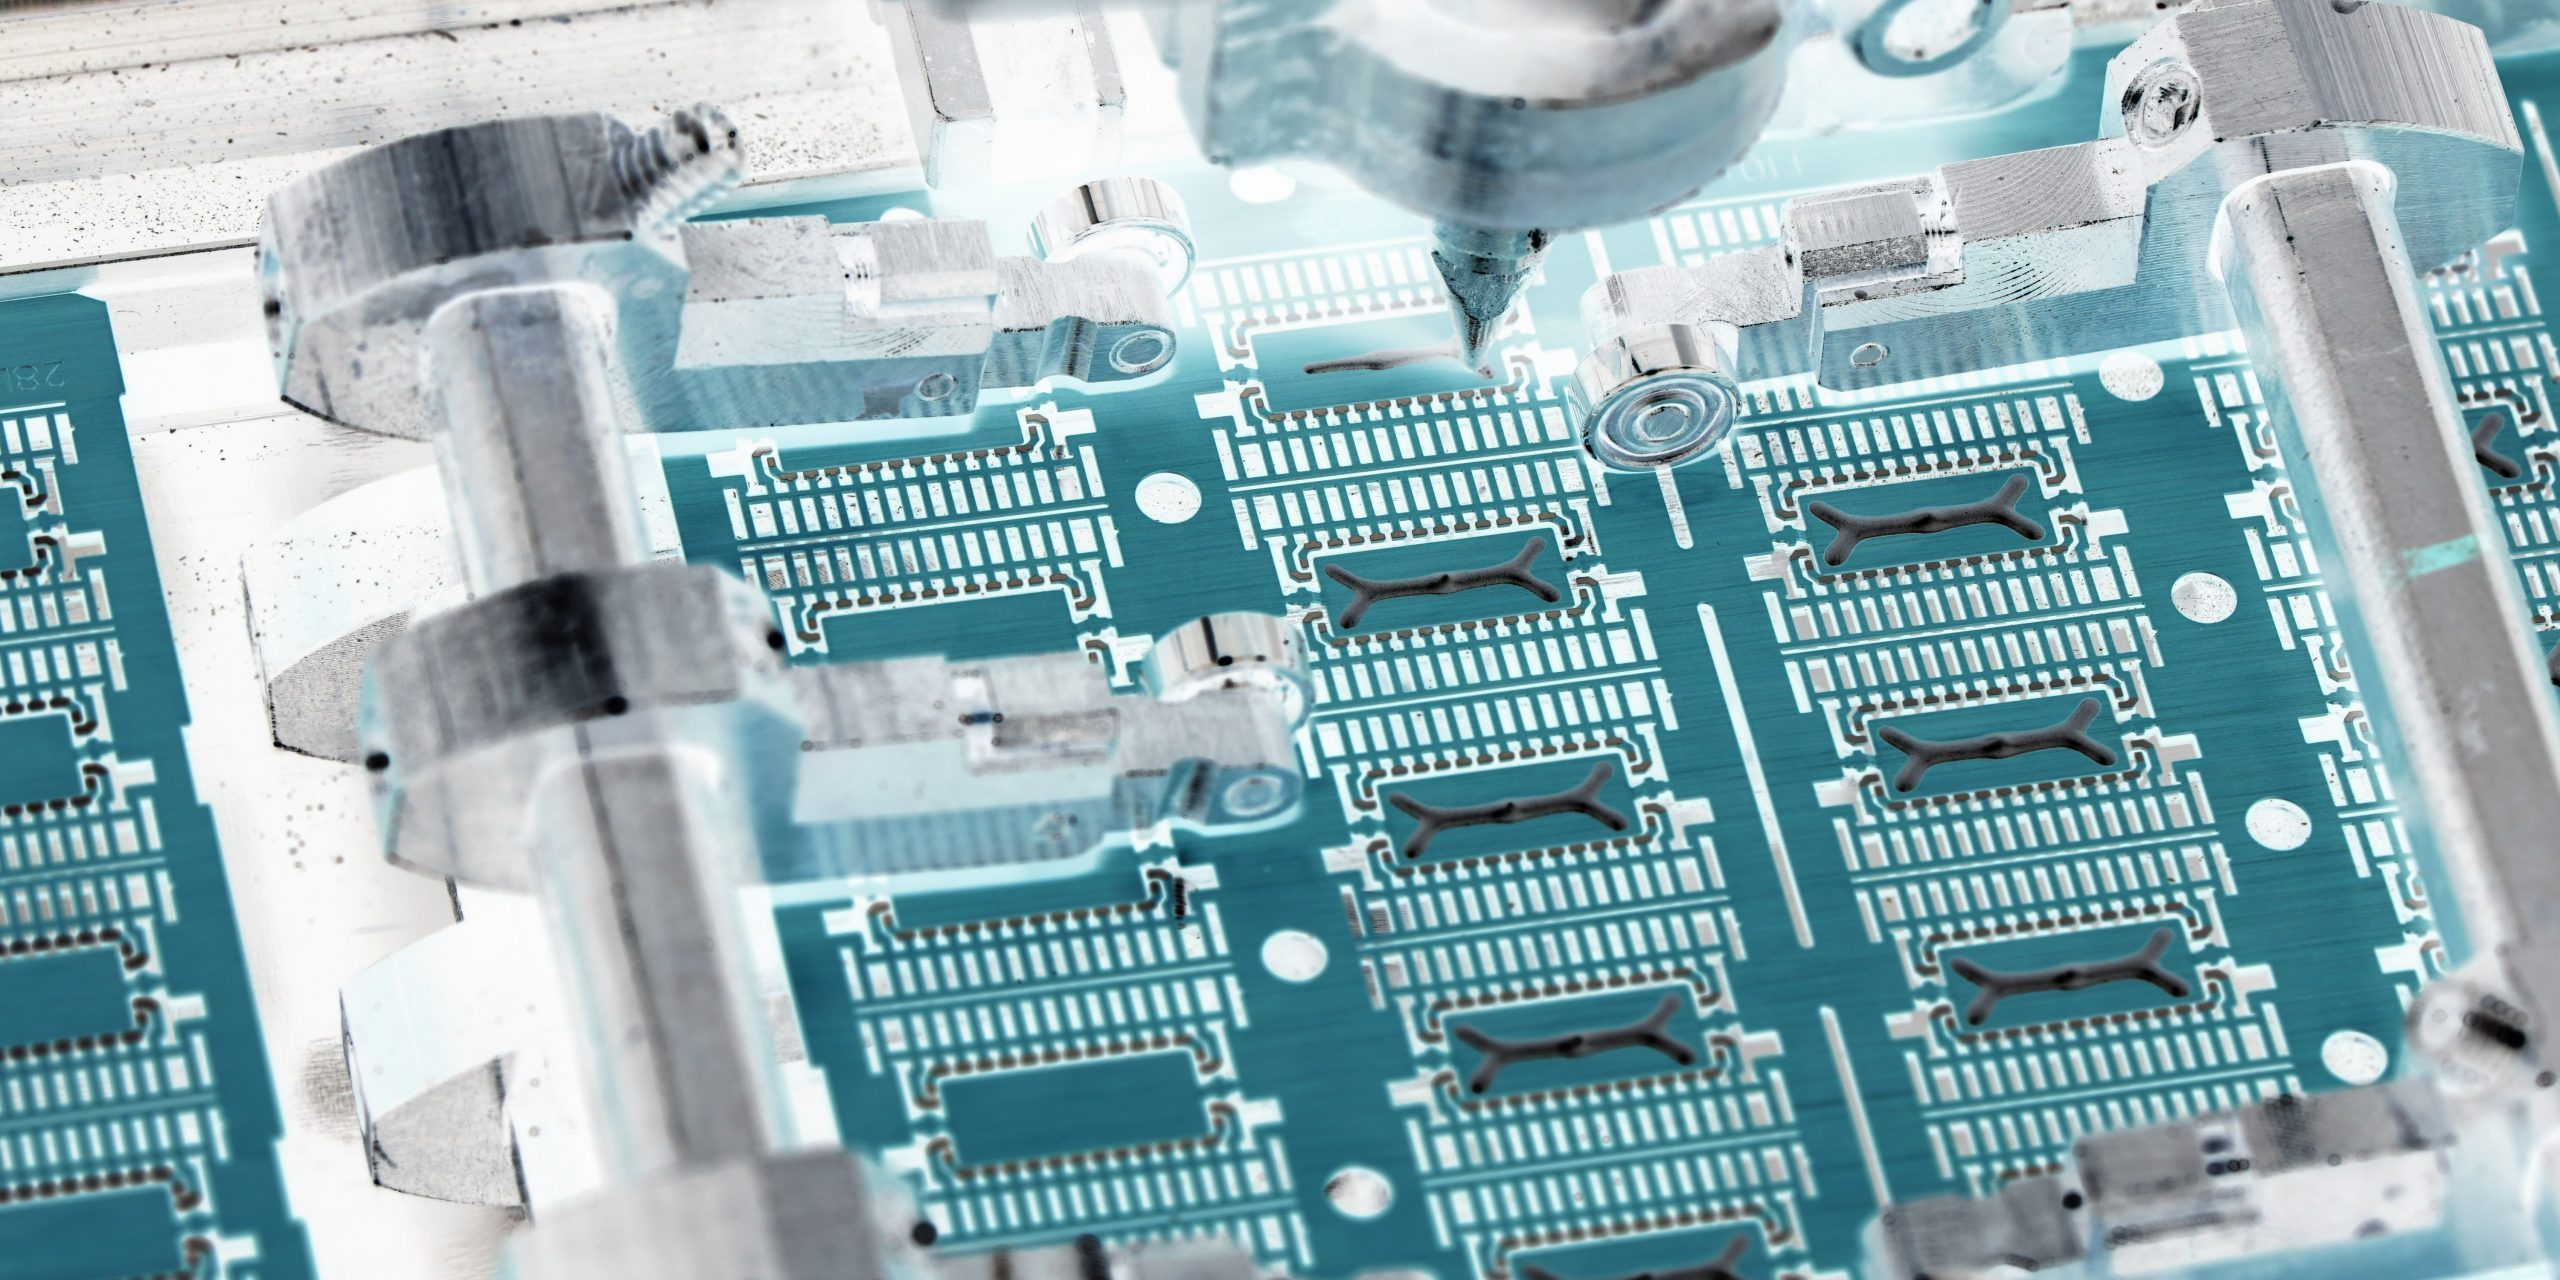 PCB utilizing Aculon adhesion promotion technology